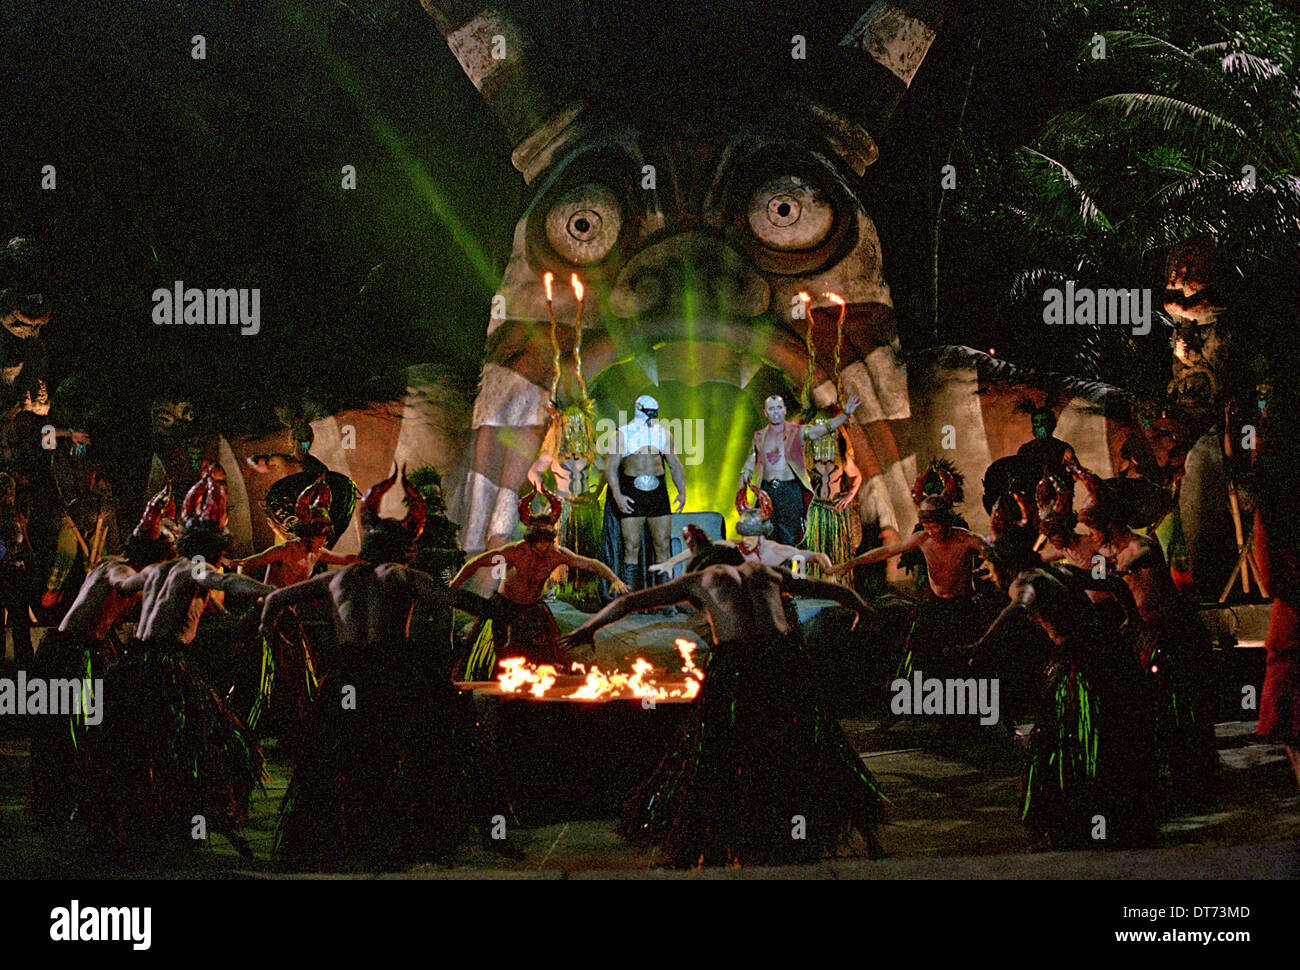 Page 3 Scooby Doo Film Still High Resolution Stock Photography And Images Alamy